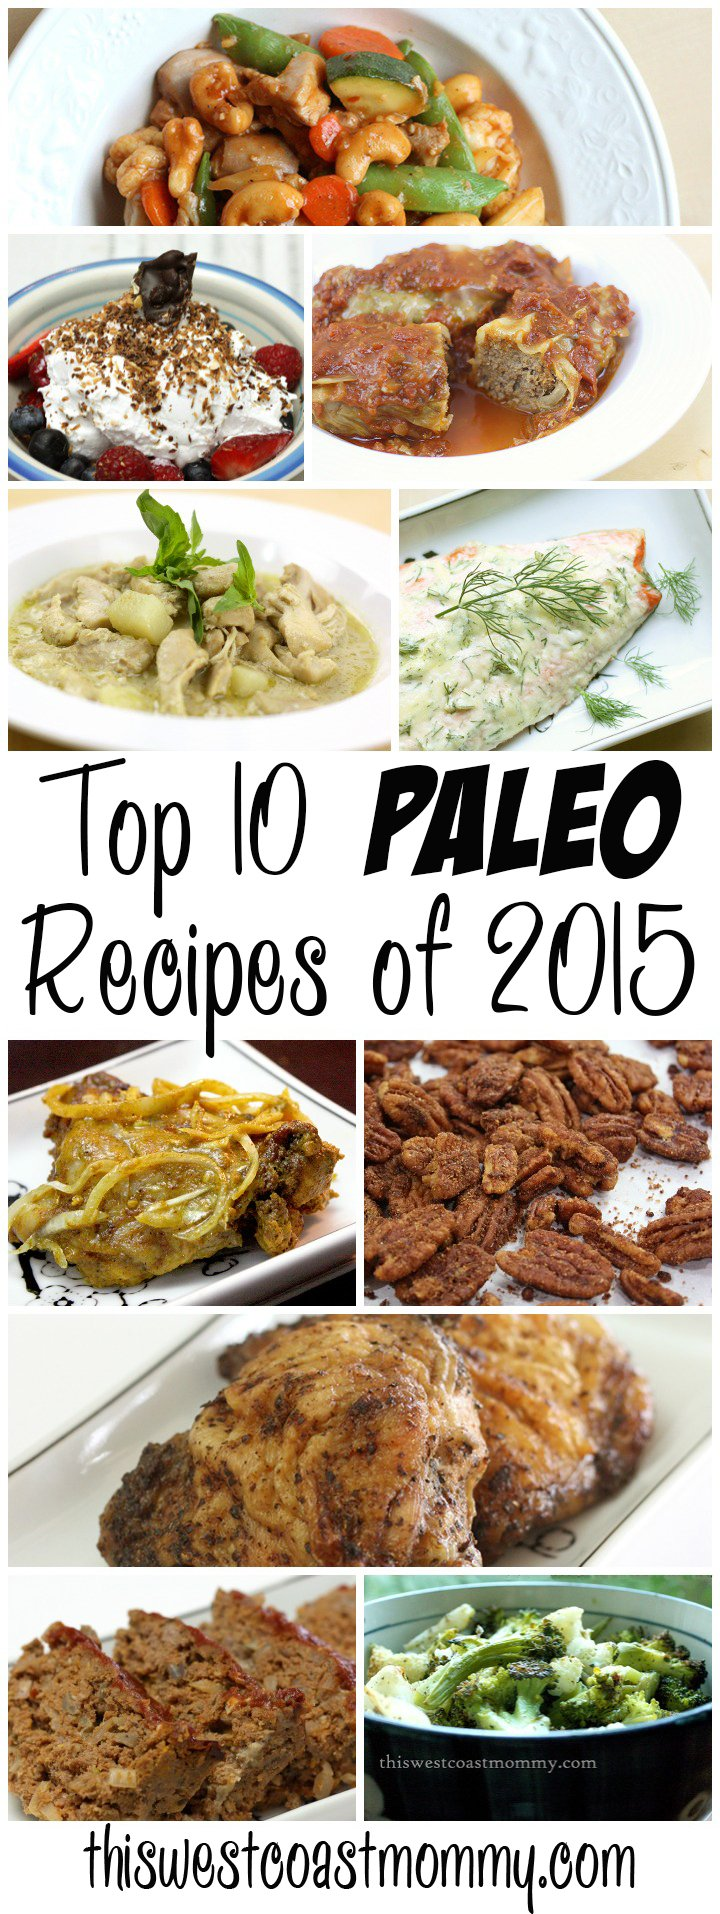 Top 10 Paleo Recipes of 2015 from This West Coast Mommy. Gluten-free, dairy-free, and Whole30!